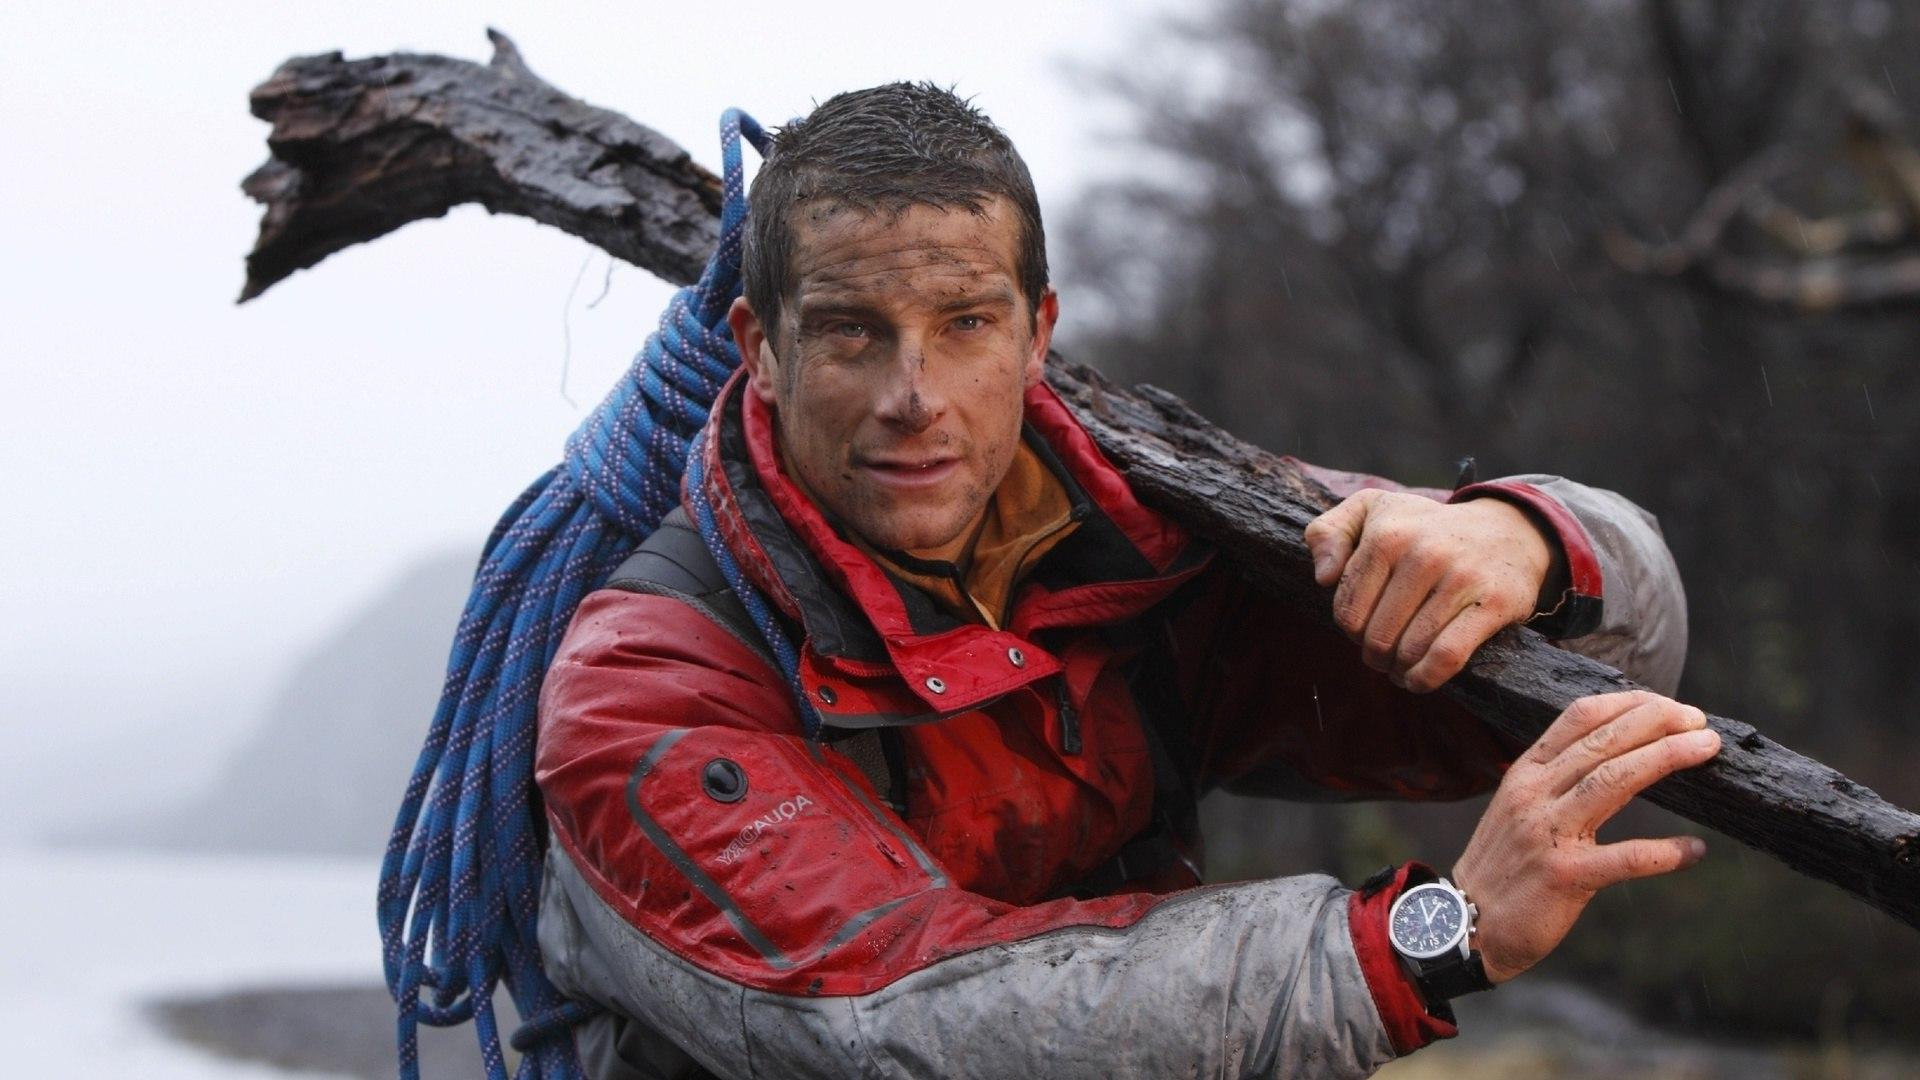 bear grylls ultimate knifebear grylls нож, bear grylls shop, bear grylls knife, bear grylls одежда, bear grylls смотреть, bear grylls gerber, bear grylls умер, bear grylls на русском, bear grylls wife, bear grylls mod 1.7.10, bear grylls obama, bear grylls 2017, bear grylls 2016, bear grylls ultimate knife, bear grylls watches, bear grylls mod, bear grylls store, bear grylls kimdir, bear grylls youtube, bear grylls survival